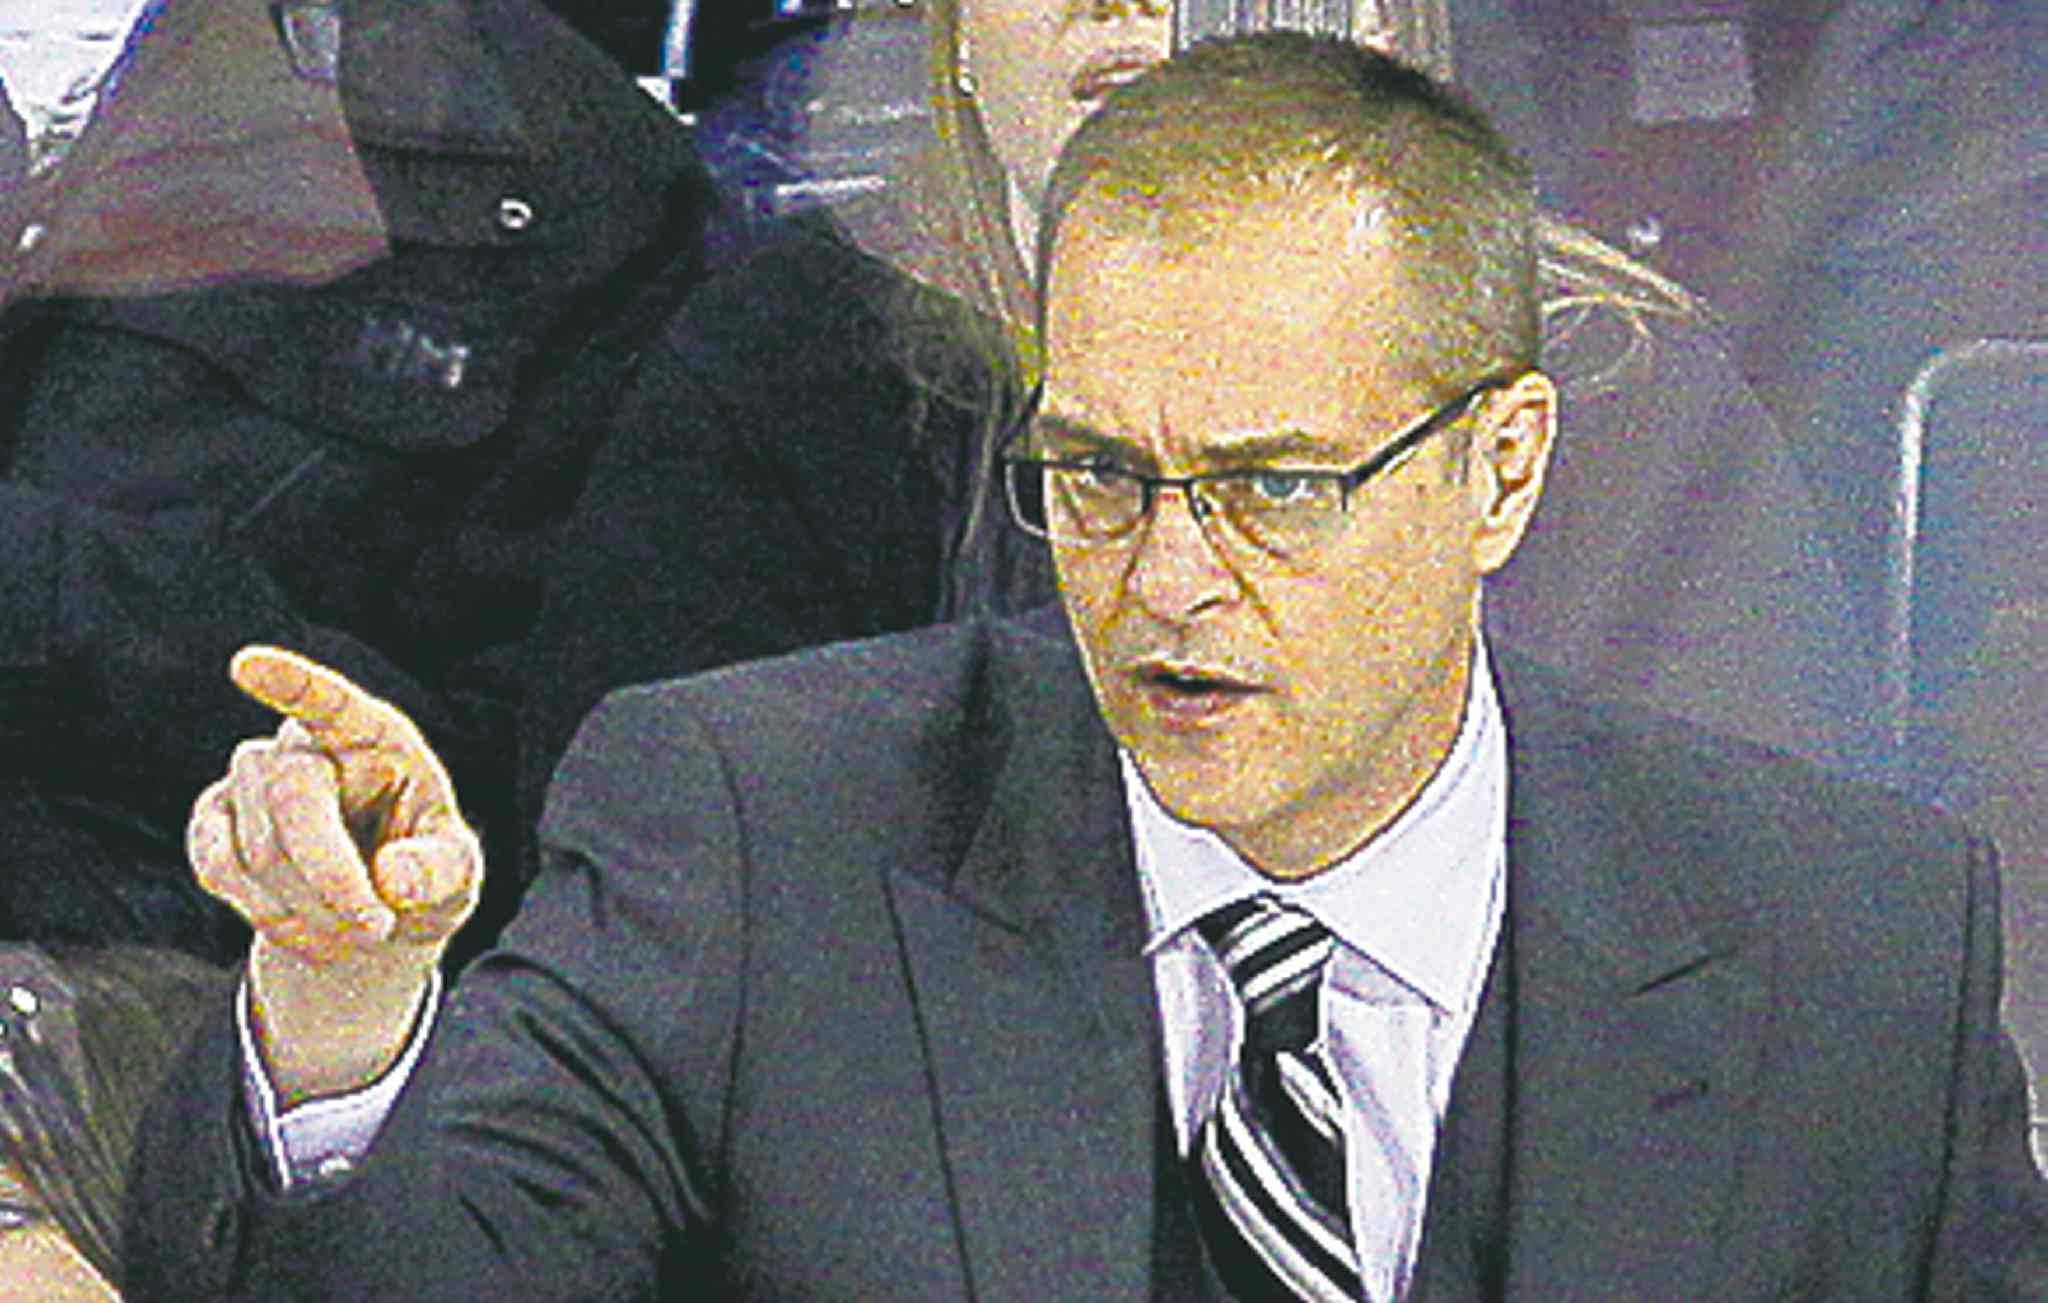 Winnipeg Jets head coach Paul Maurice.